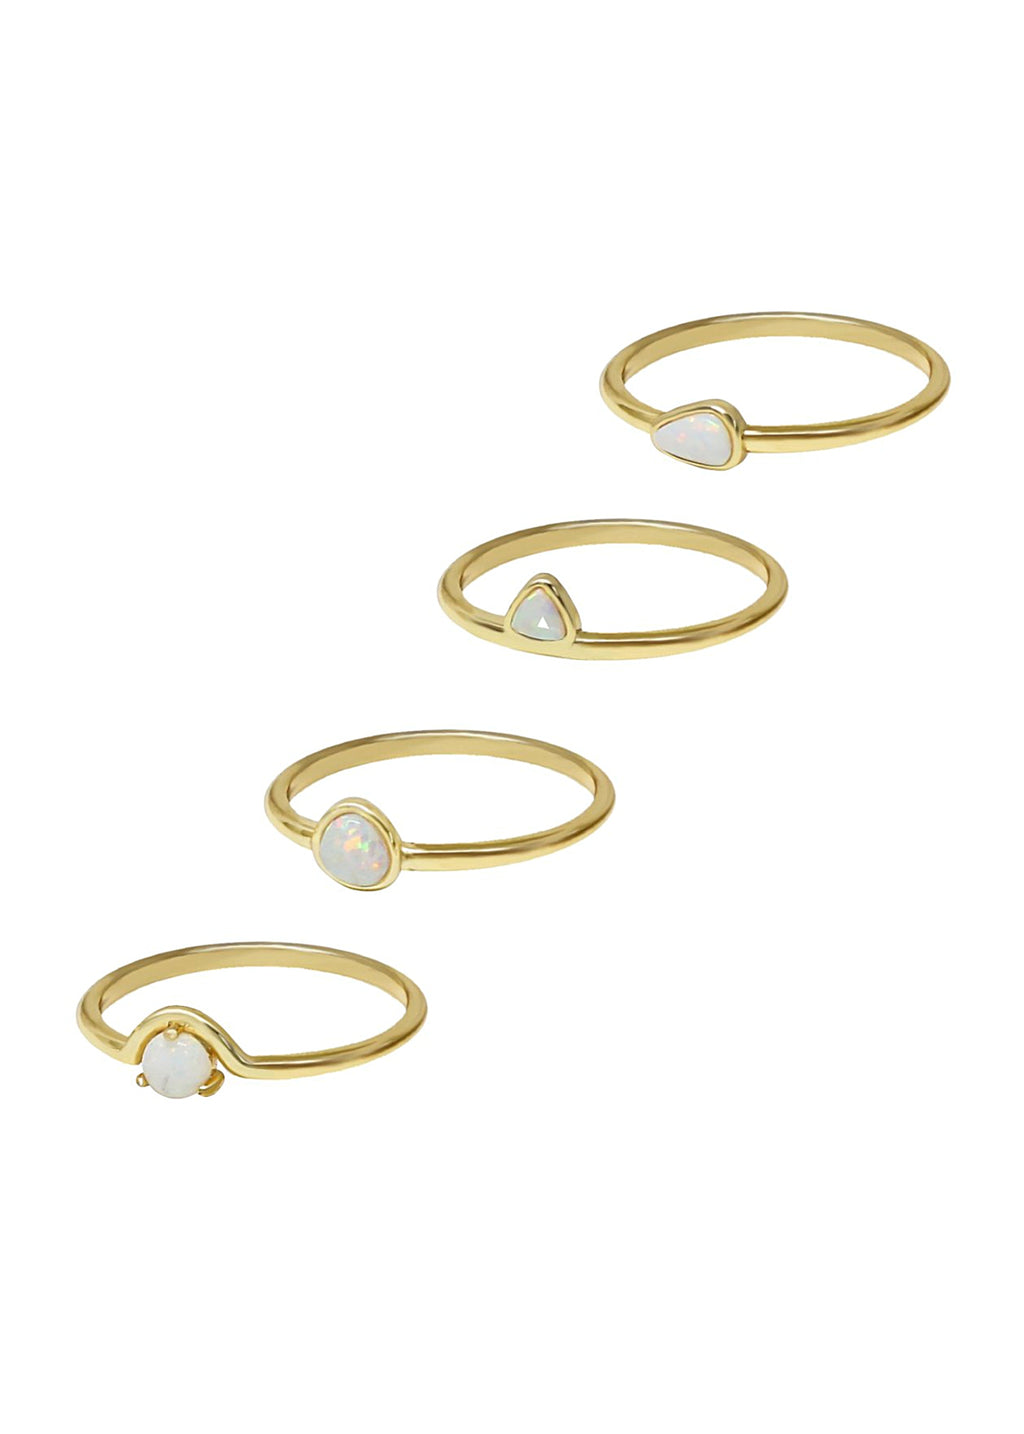 ETTIKA TRUE OPAL STACKING RINGS SET OF 4